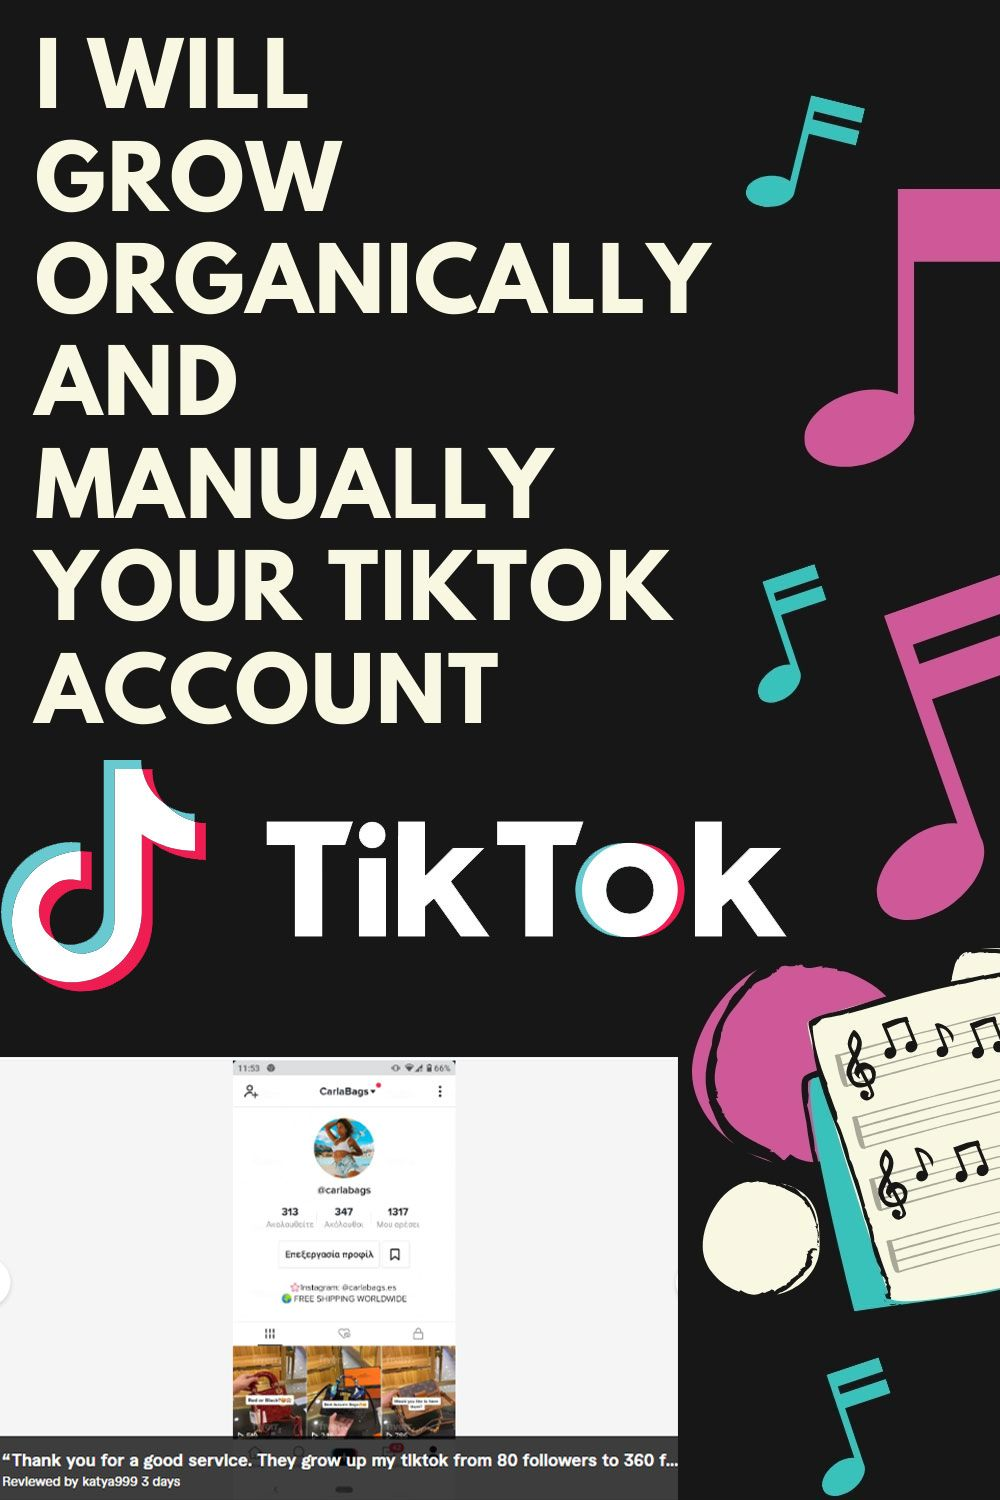 I Will Do Promote And Grow Your Tiktok To 1m Fans Manually In 2021 Advertising Ideas Business Promotional Products Marketing Promotion Strategy